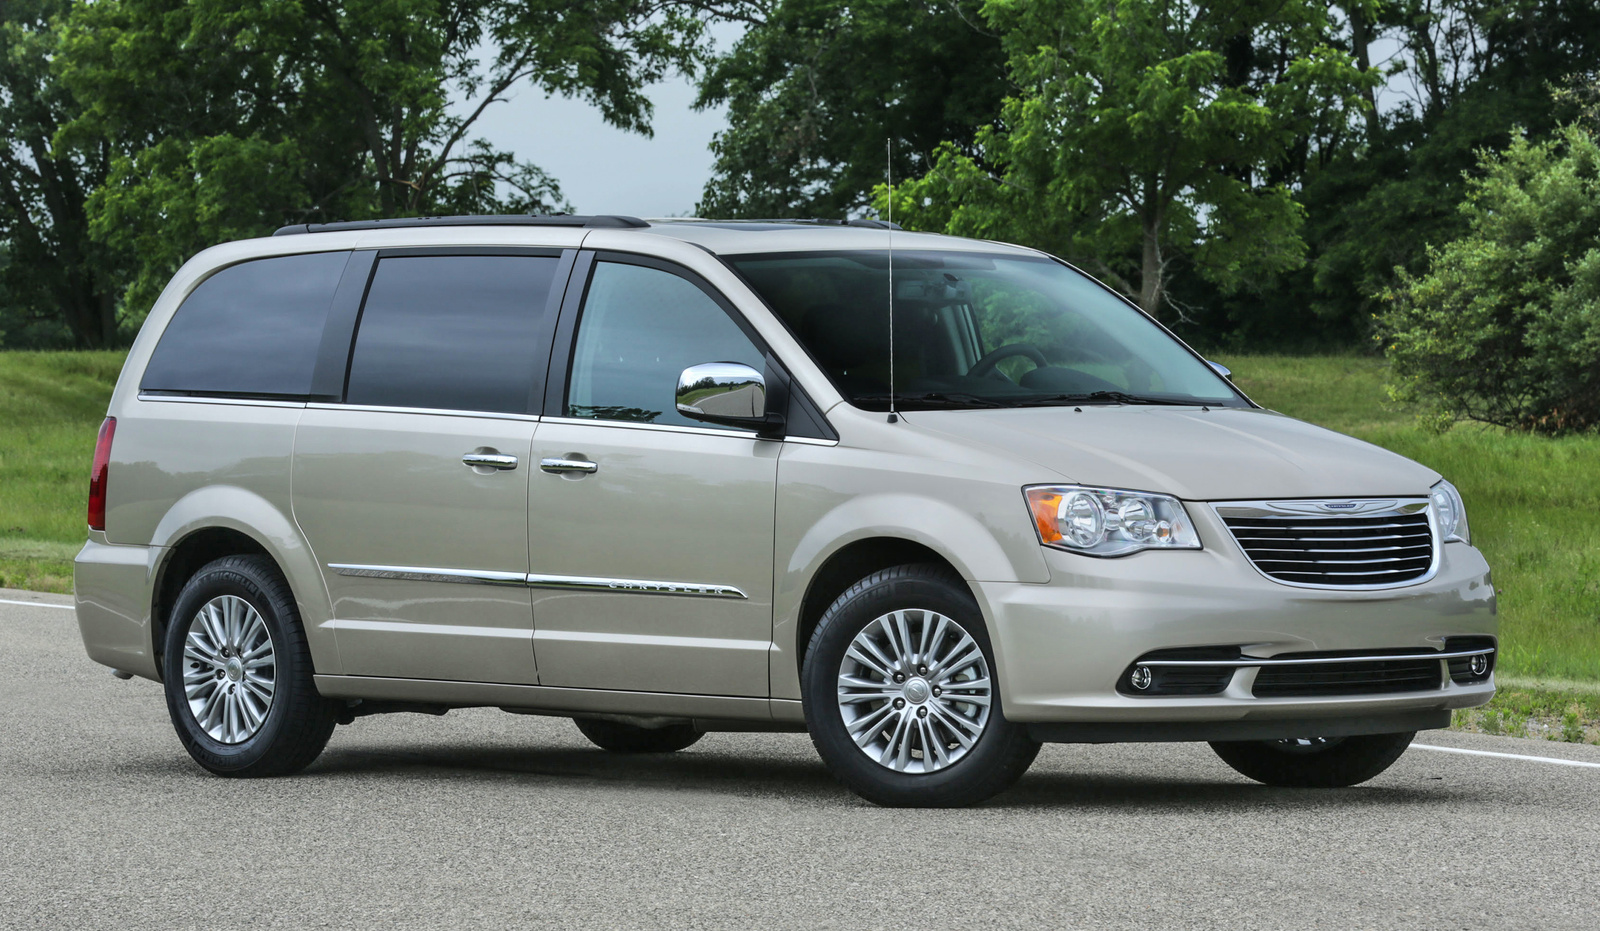 chrysler town country test drive review cargurus chrysler town country test drive